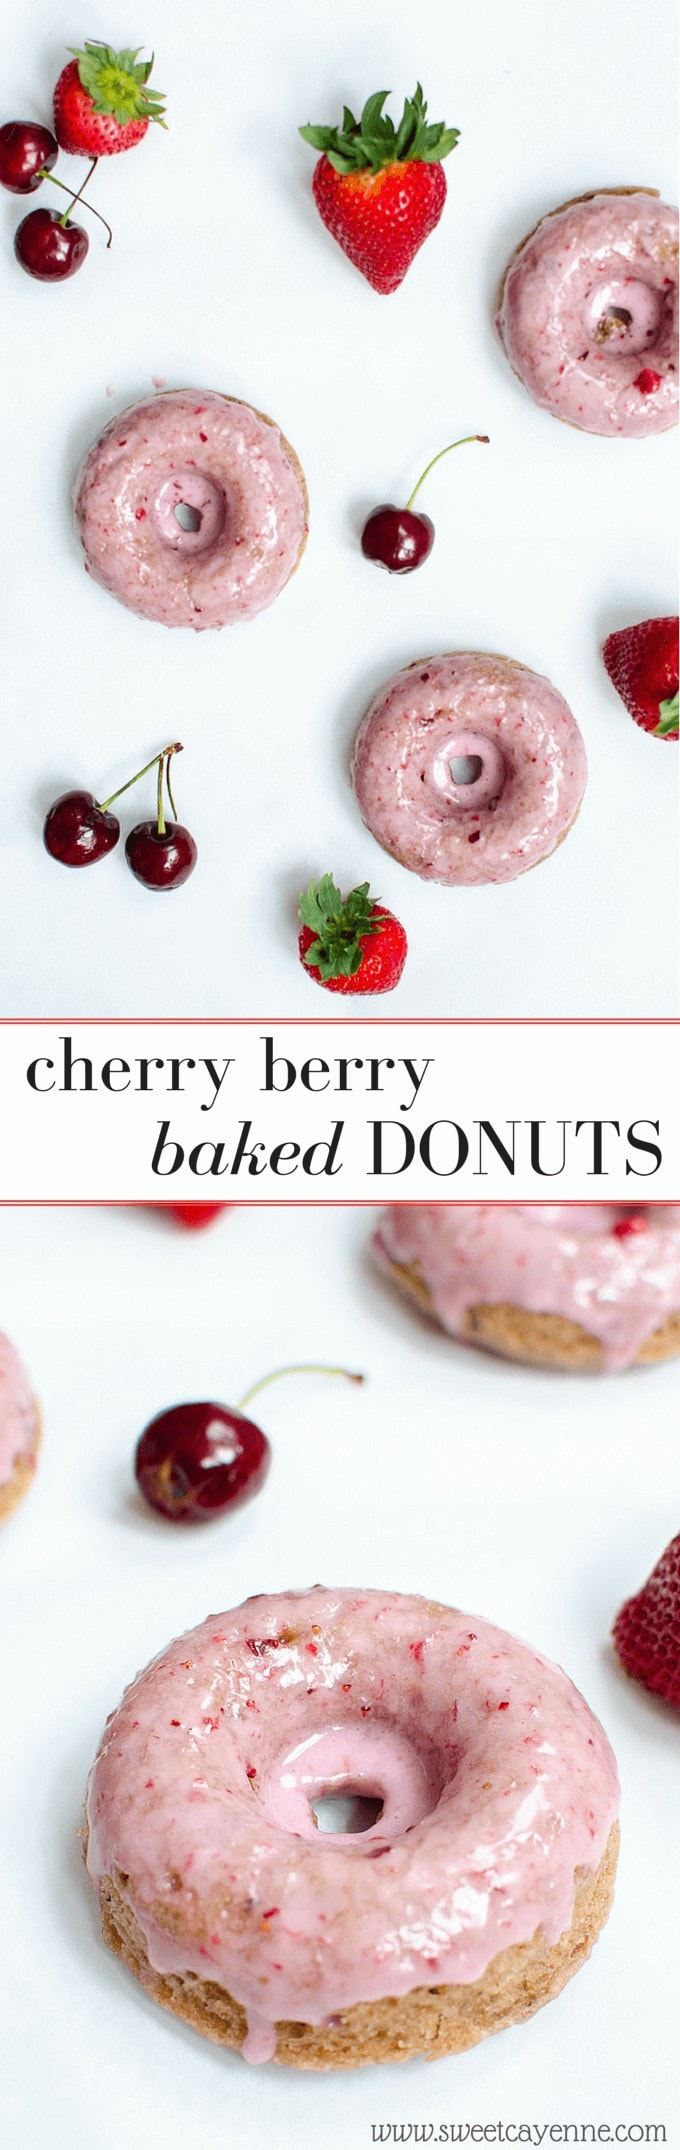 These easy baked donuts can be ready and on your table in less than an hour - perfect way to showcase summer fruit!